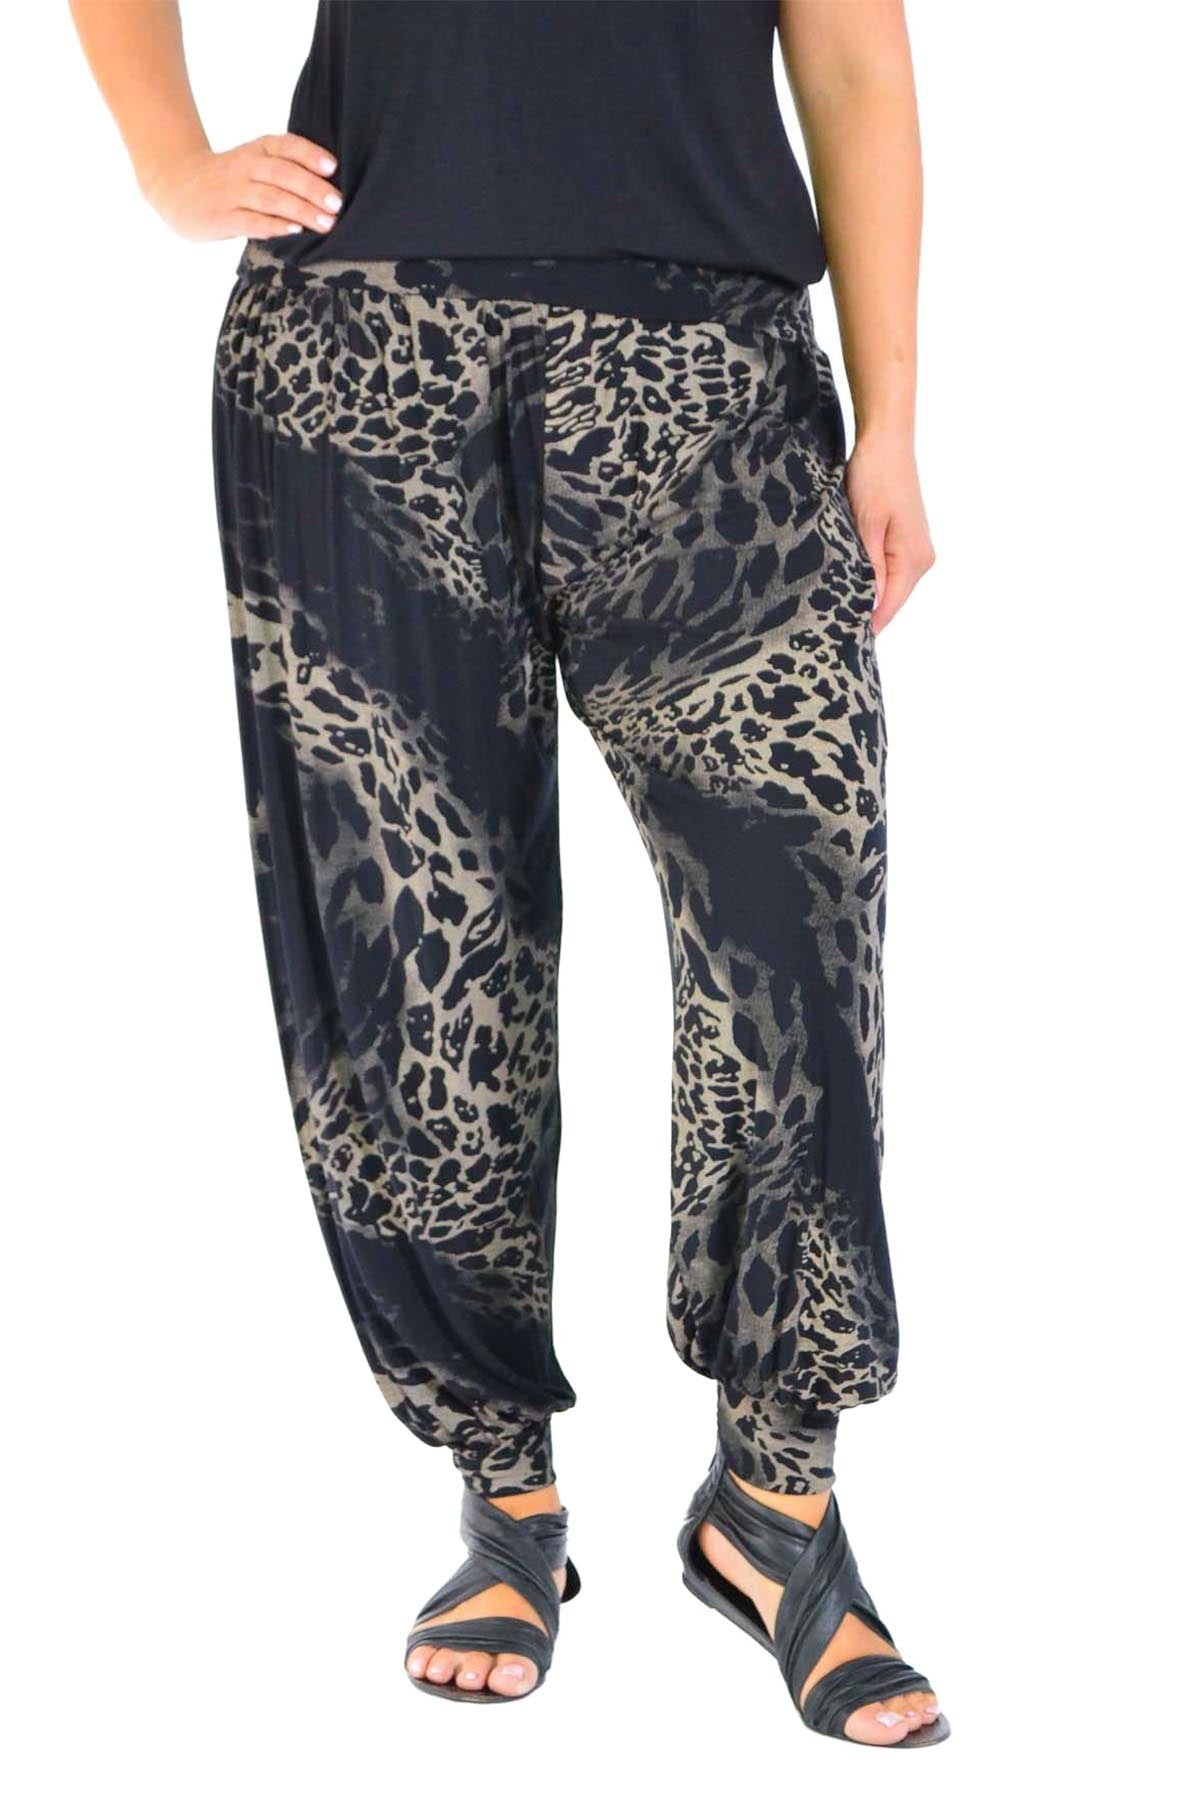 7031 Abstract Leopard Print Harem Trouser